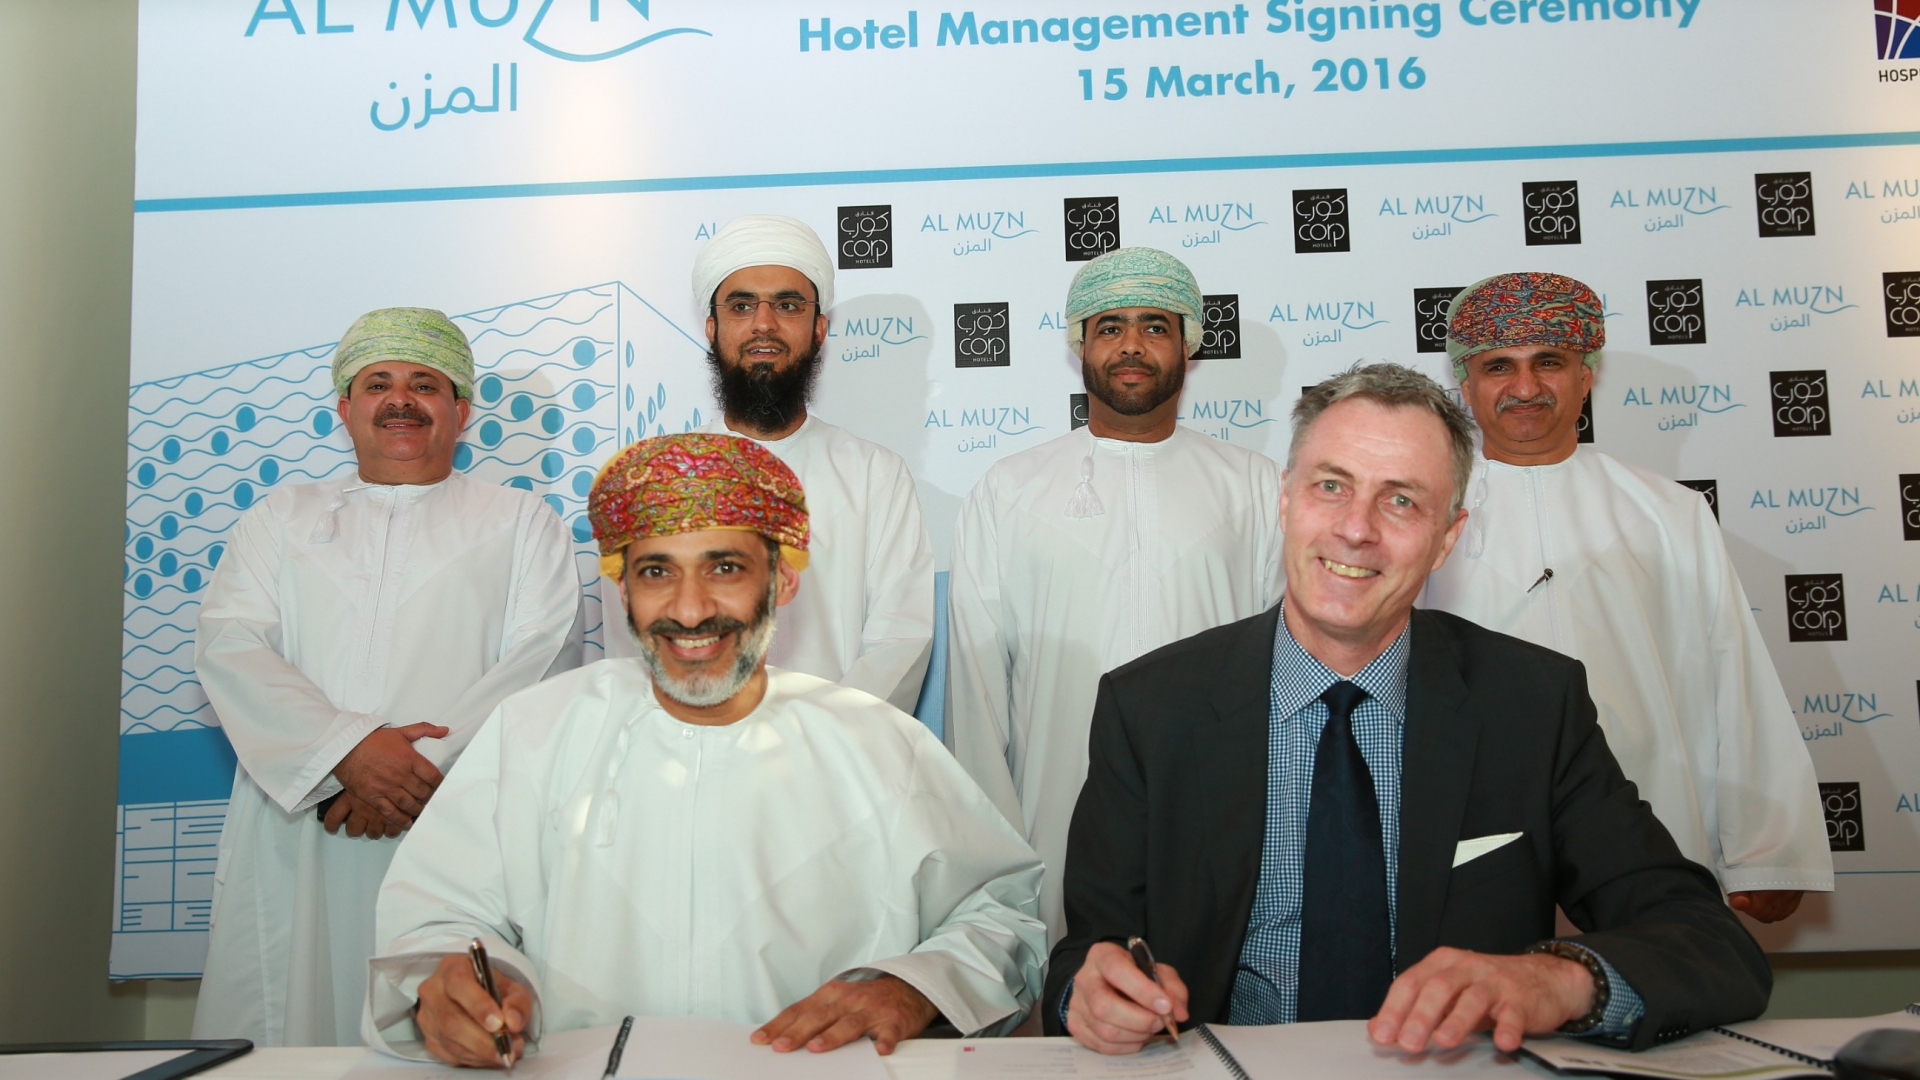 HMH - HOSPITALITY MANAGEMENT HOLDINGS CONTINUES EXPANSION IN OMAN